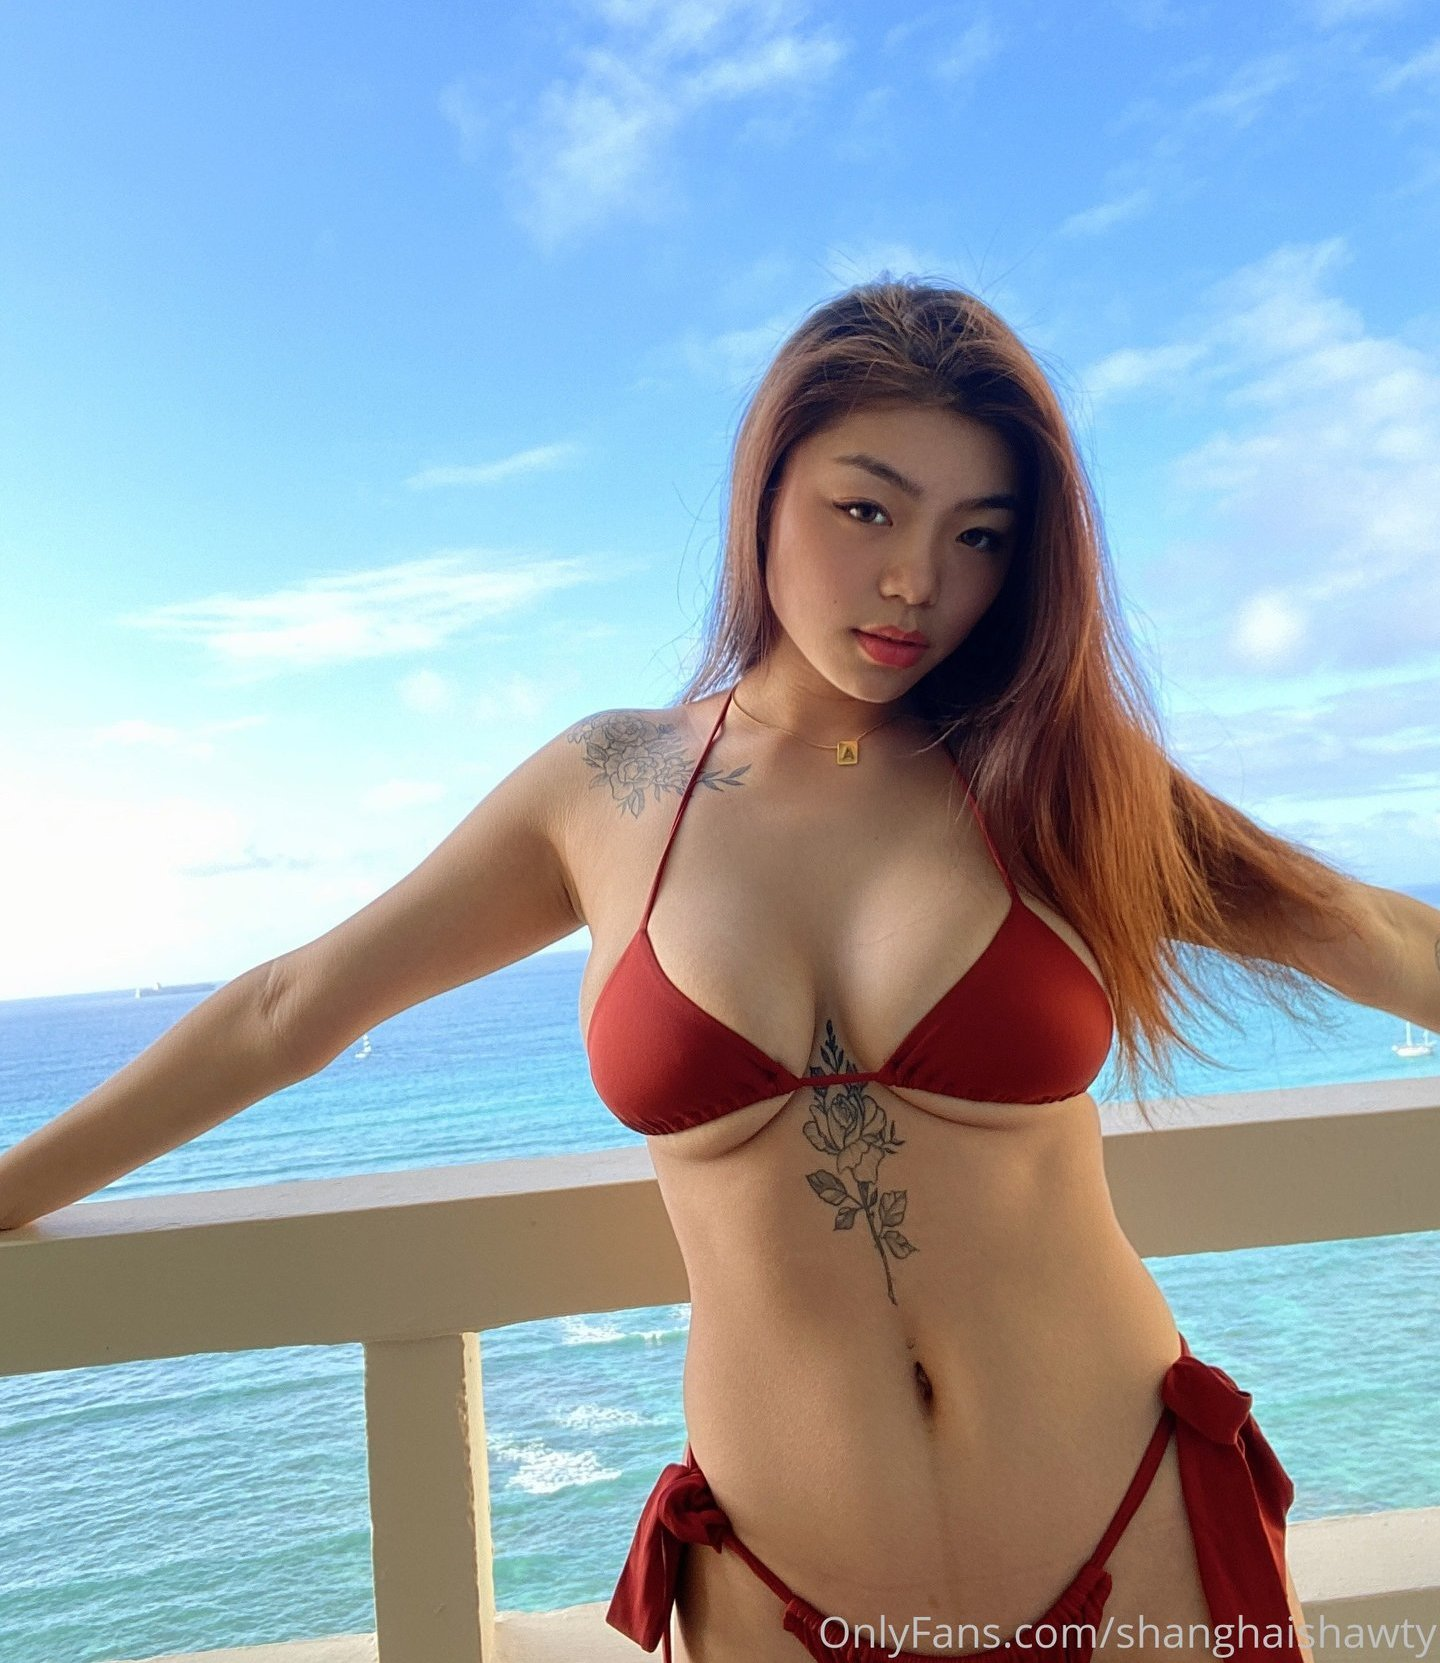 Shanghai Shawty Xanqiue Onlyfans Sexy Leaks 0031